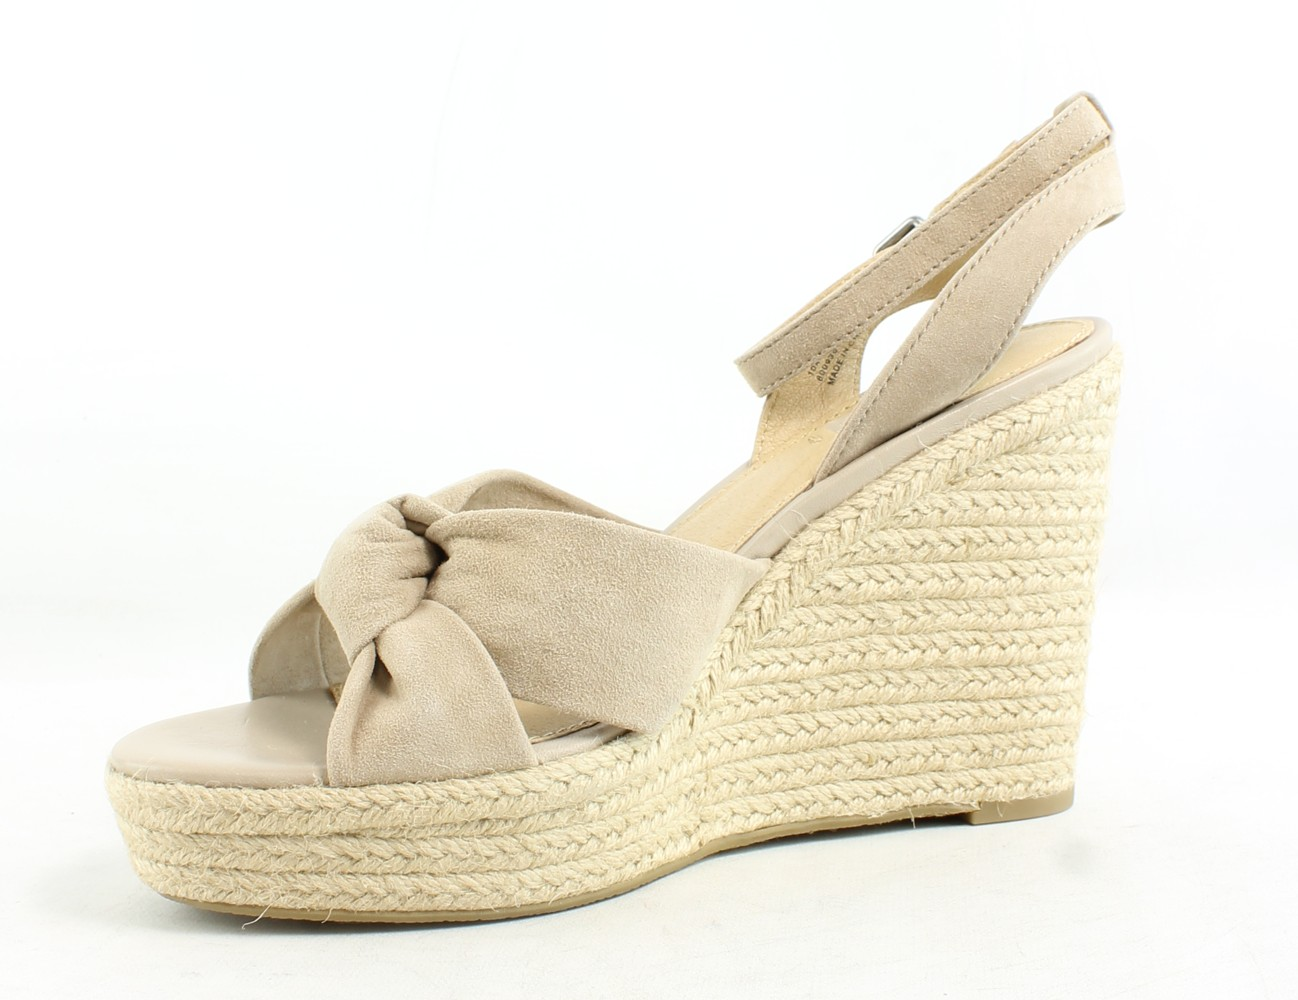 Frye-Womens-Charlotte-Twist-Suede-Leather-Ankle-Strap-Espadrille-Heels thumbnail 10